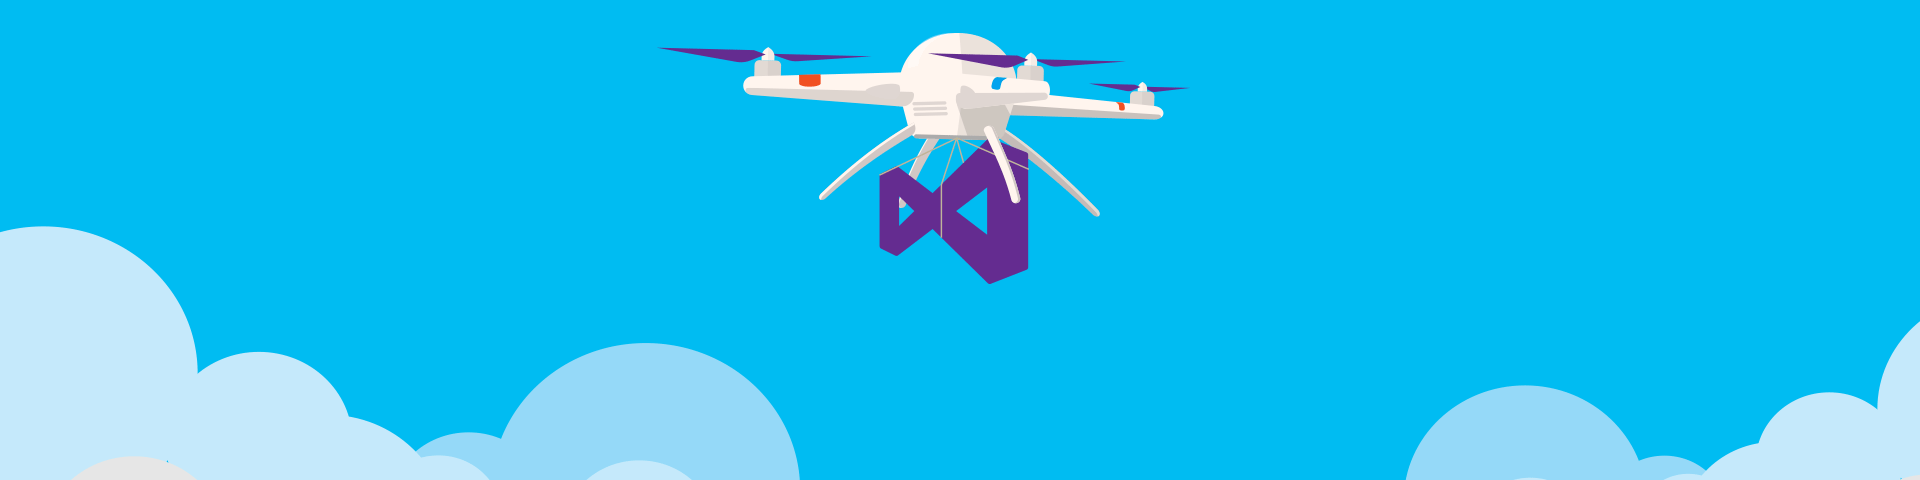 A illustration of a flying drone carrying the Visual Studio logo